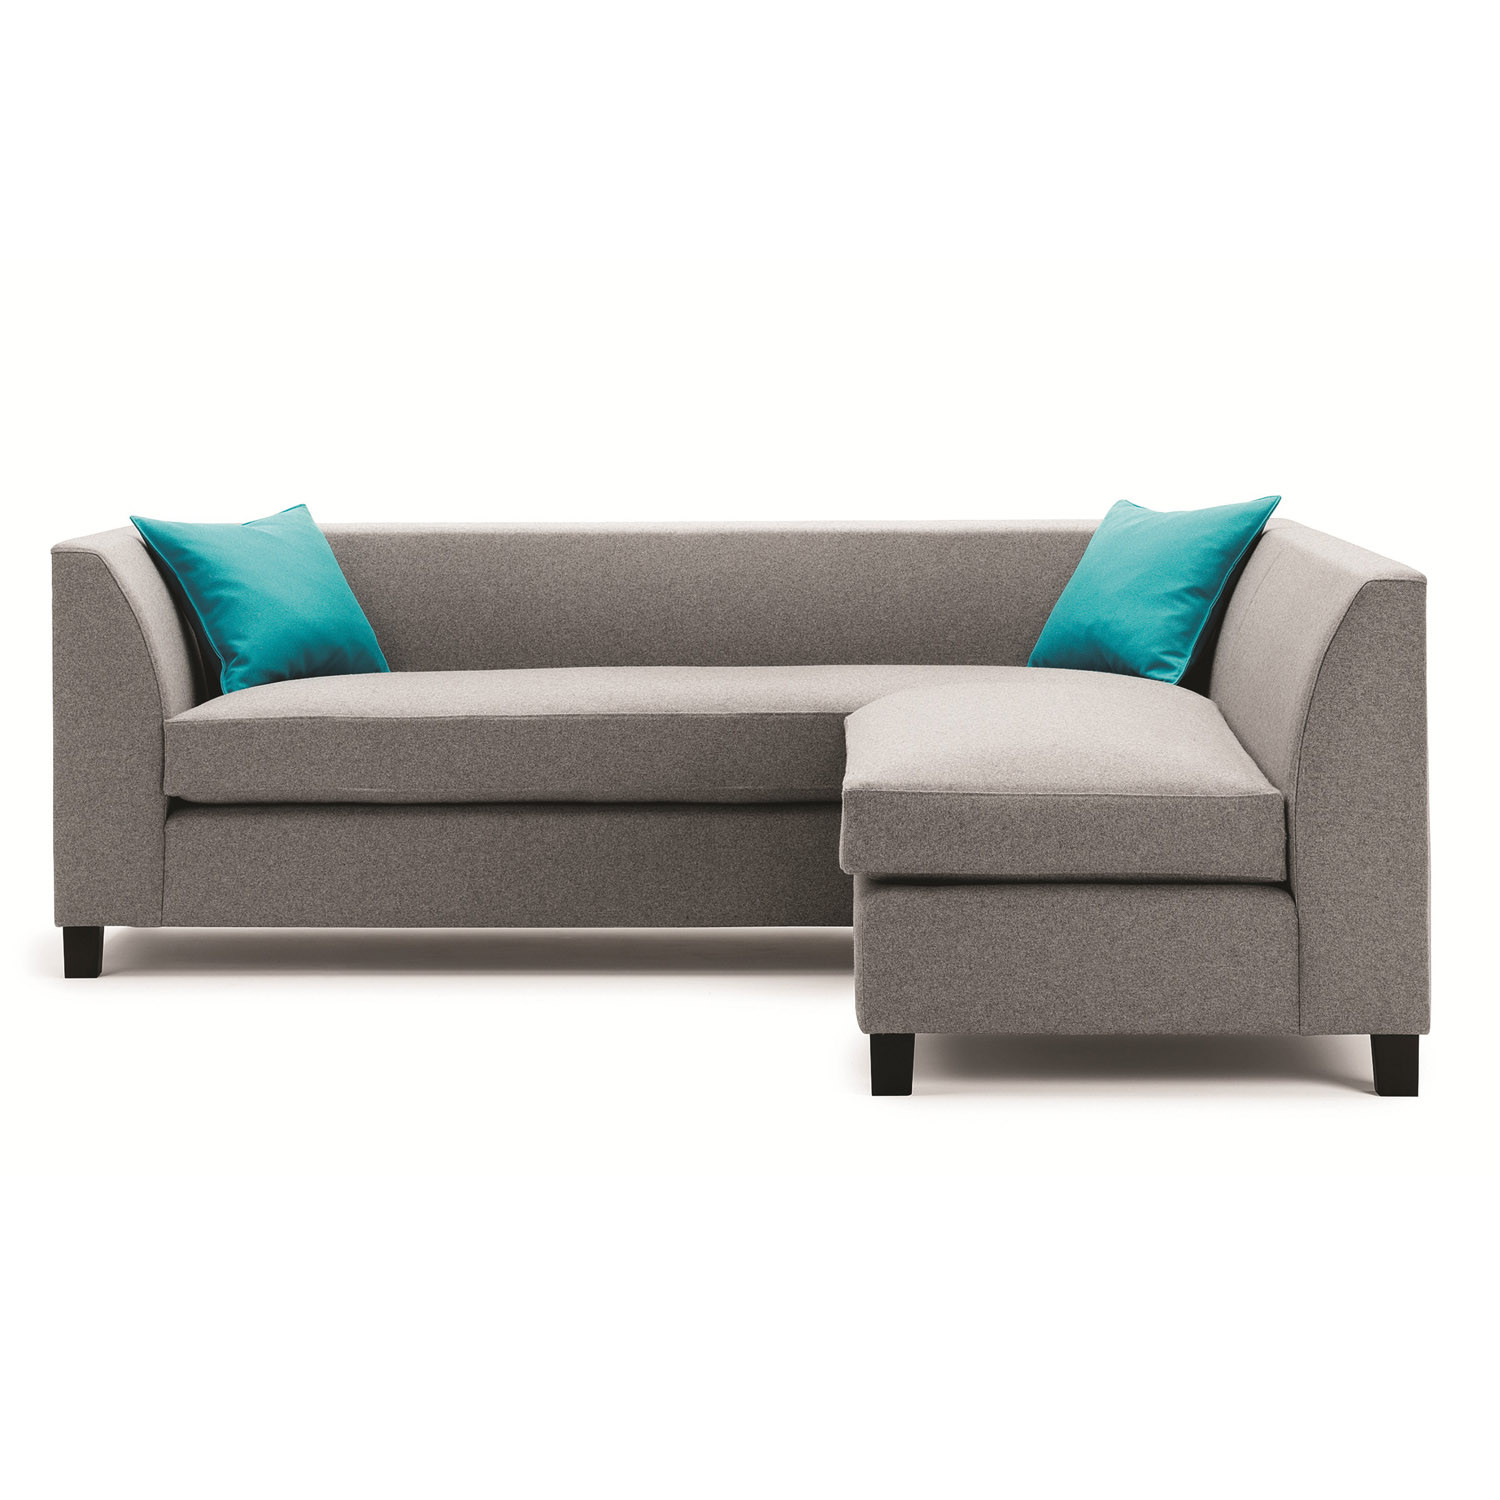 Imogen Corner Sofa with Chaise